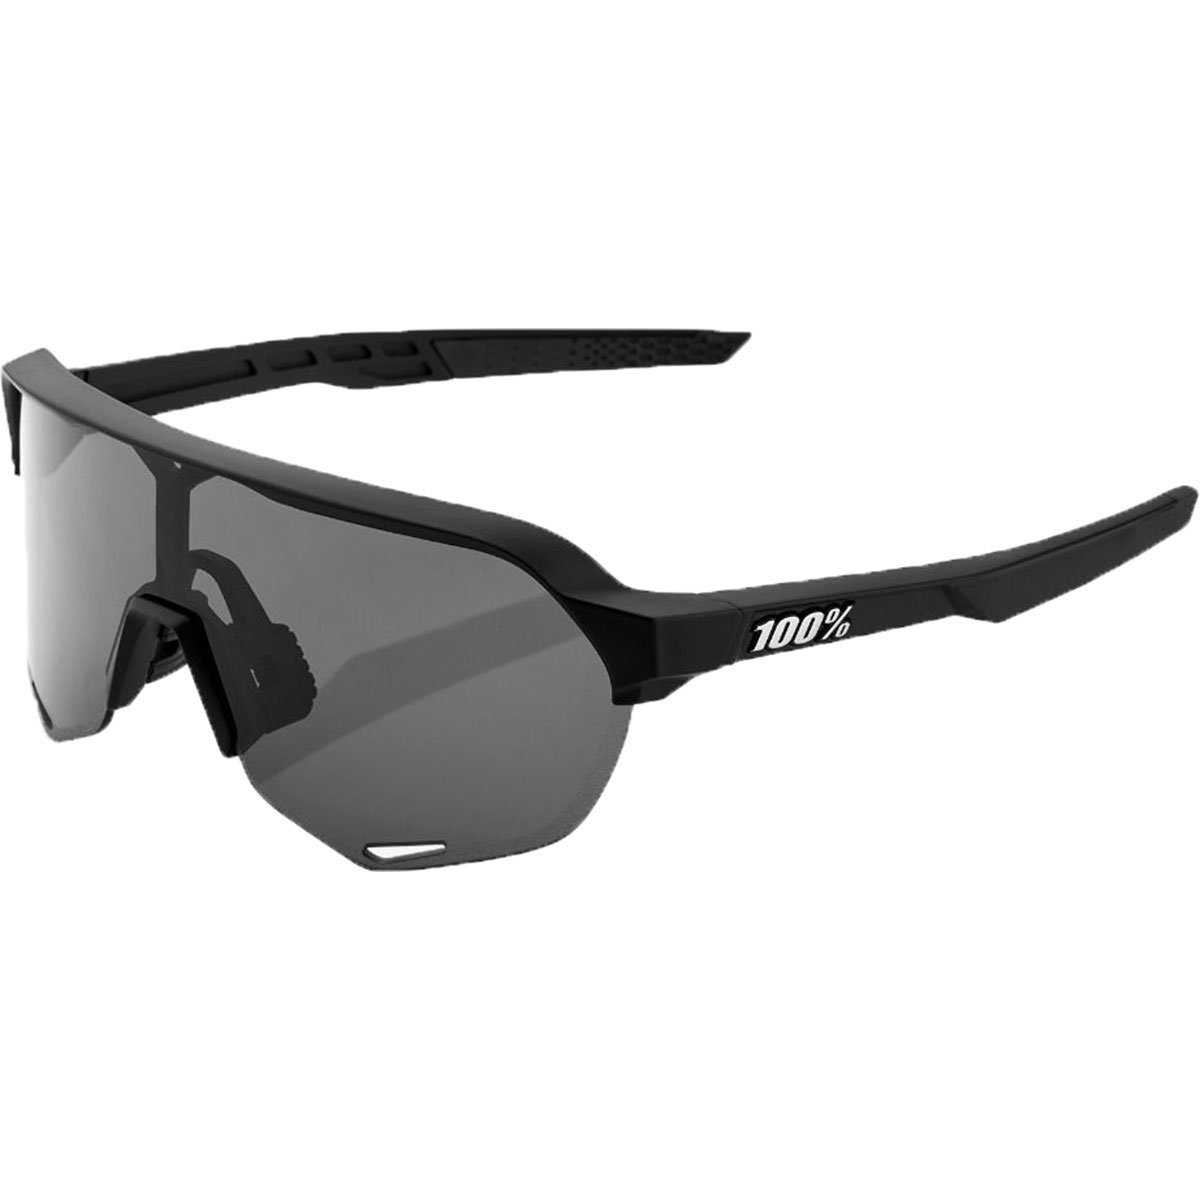 100/% S2 Sunglasses,OS,Soft Tact Black//Smoke 61003-100-57